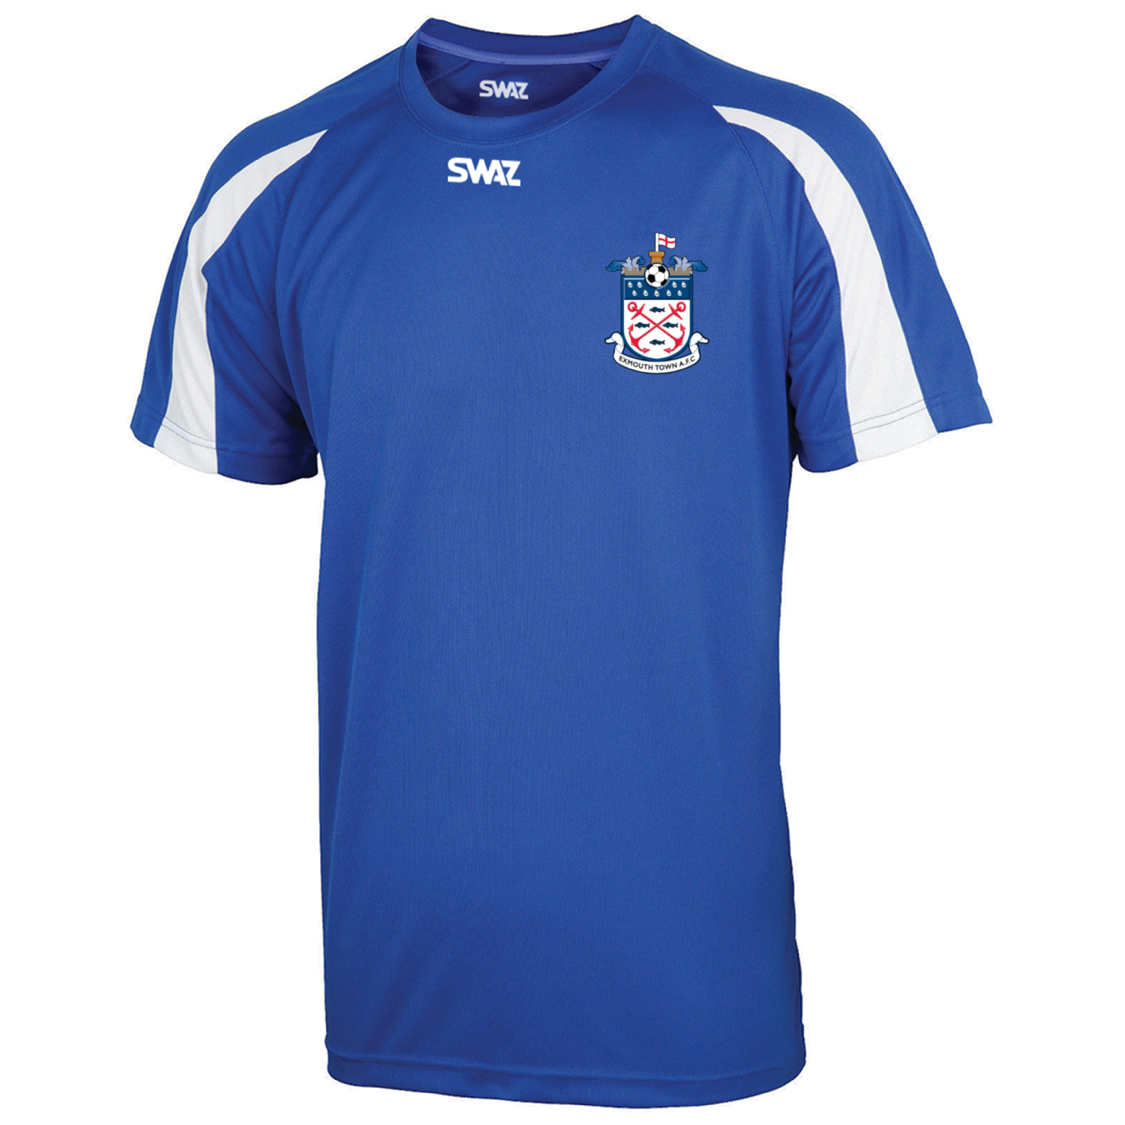 SWAZ Exmouth Town Adult Training T-Shirt – Royal/White